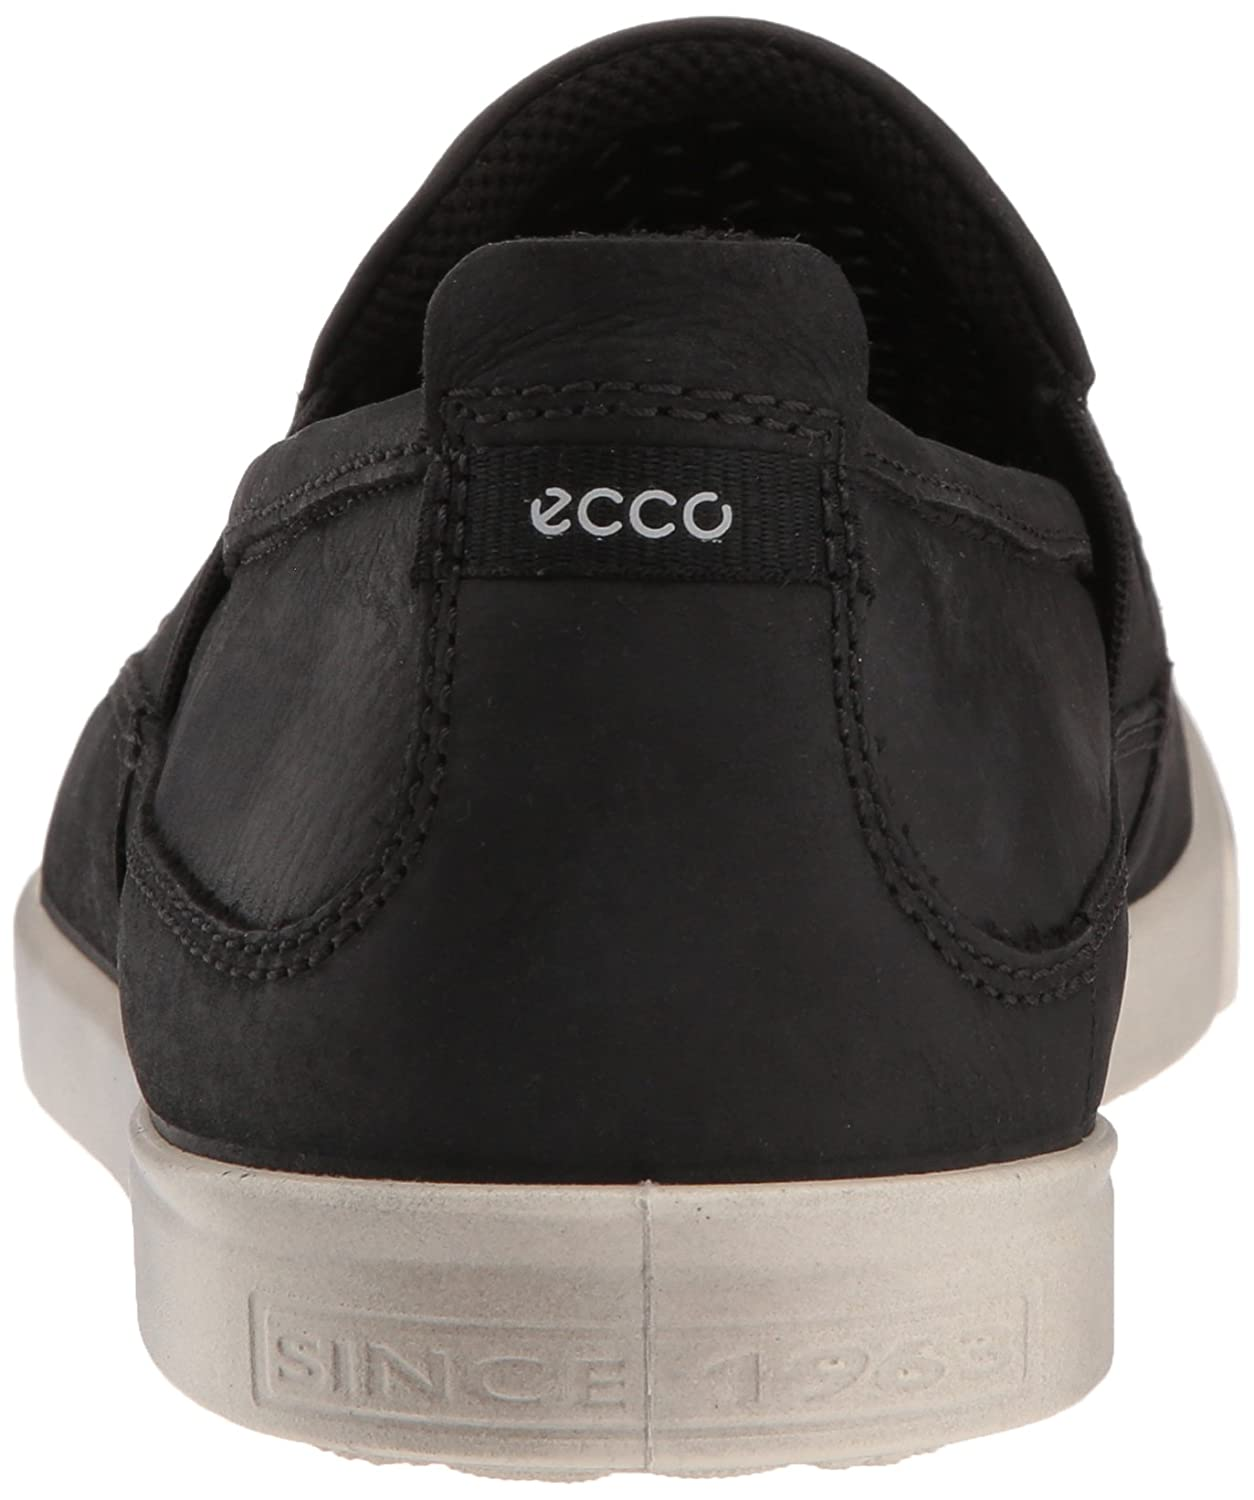 ECCO Men's Shoes Men's ECCO Collin Perf Slip on Sneakers B074CVM2YM Sneakers bca020